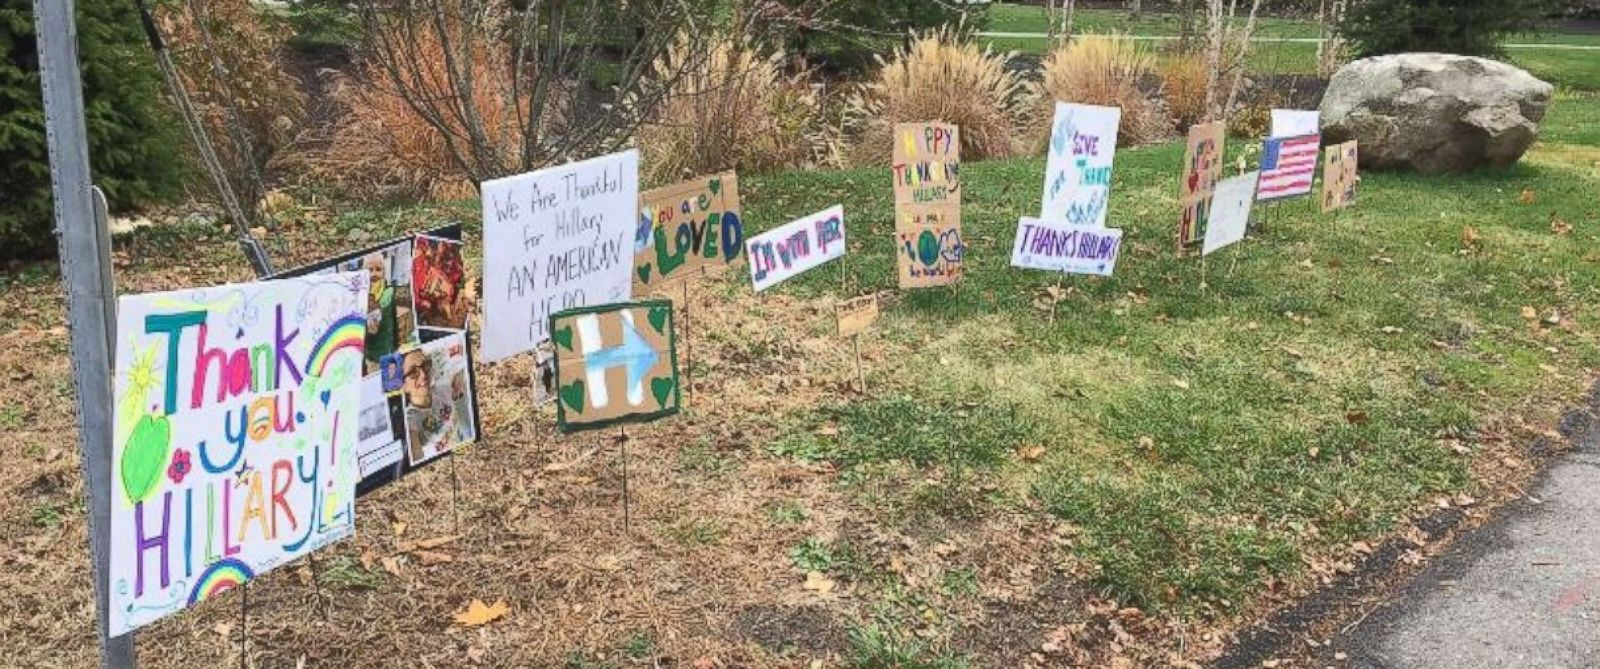 """PHOTO: Hillary Clinton tweeted this photo on November 24, 2016, writing, """"I was greeted by this heartwarming display on the corner of my street today. Thank you to all of you who did this. Happy Thanksgiving. -H"""""""